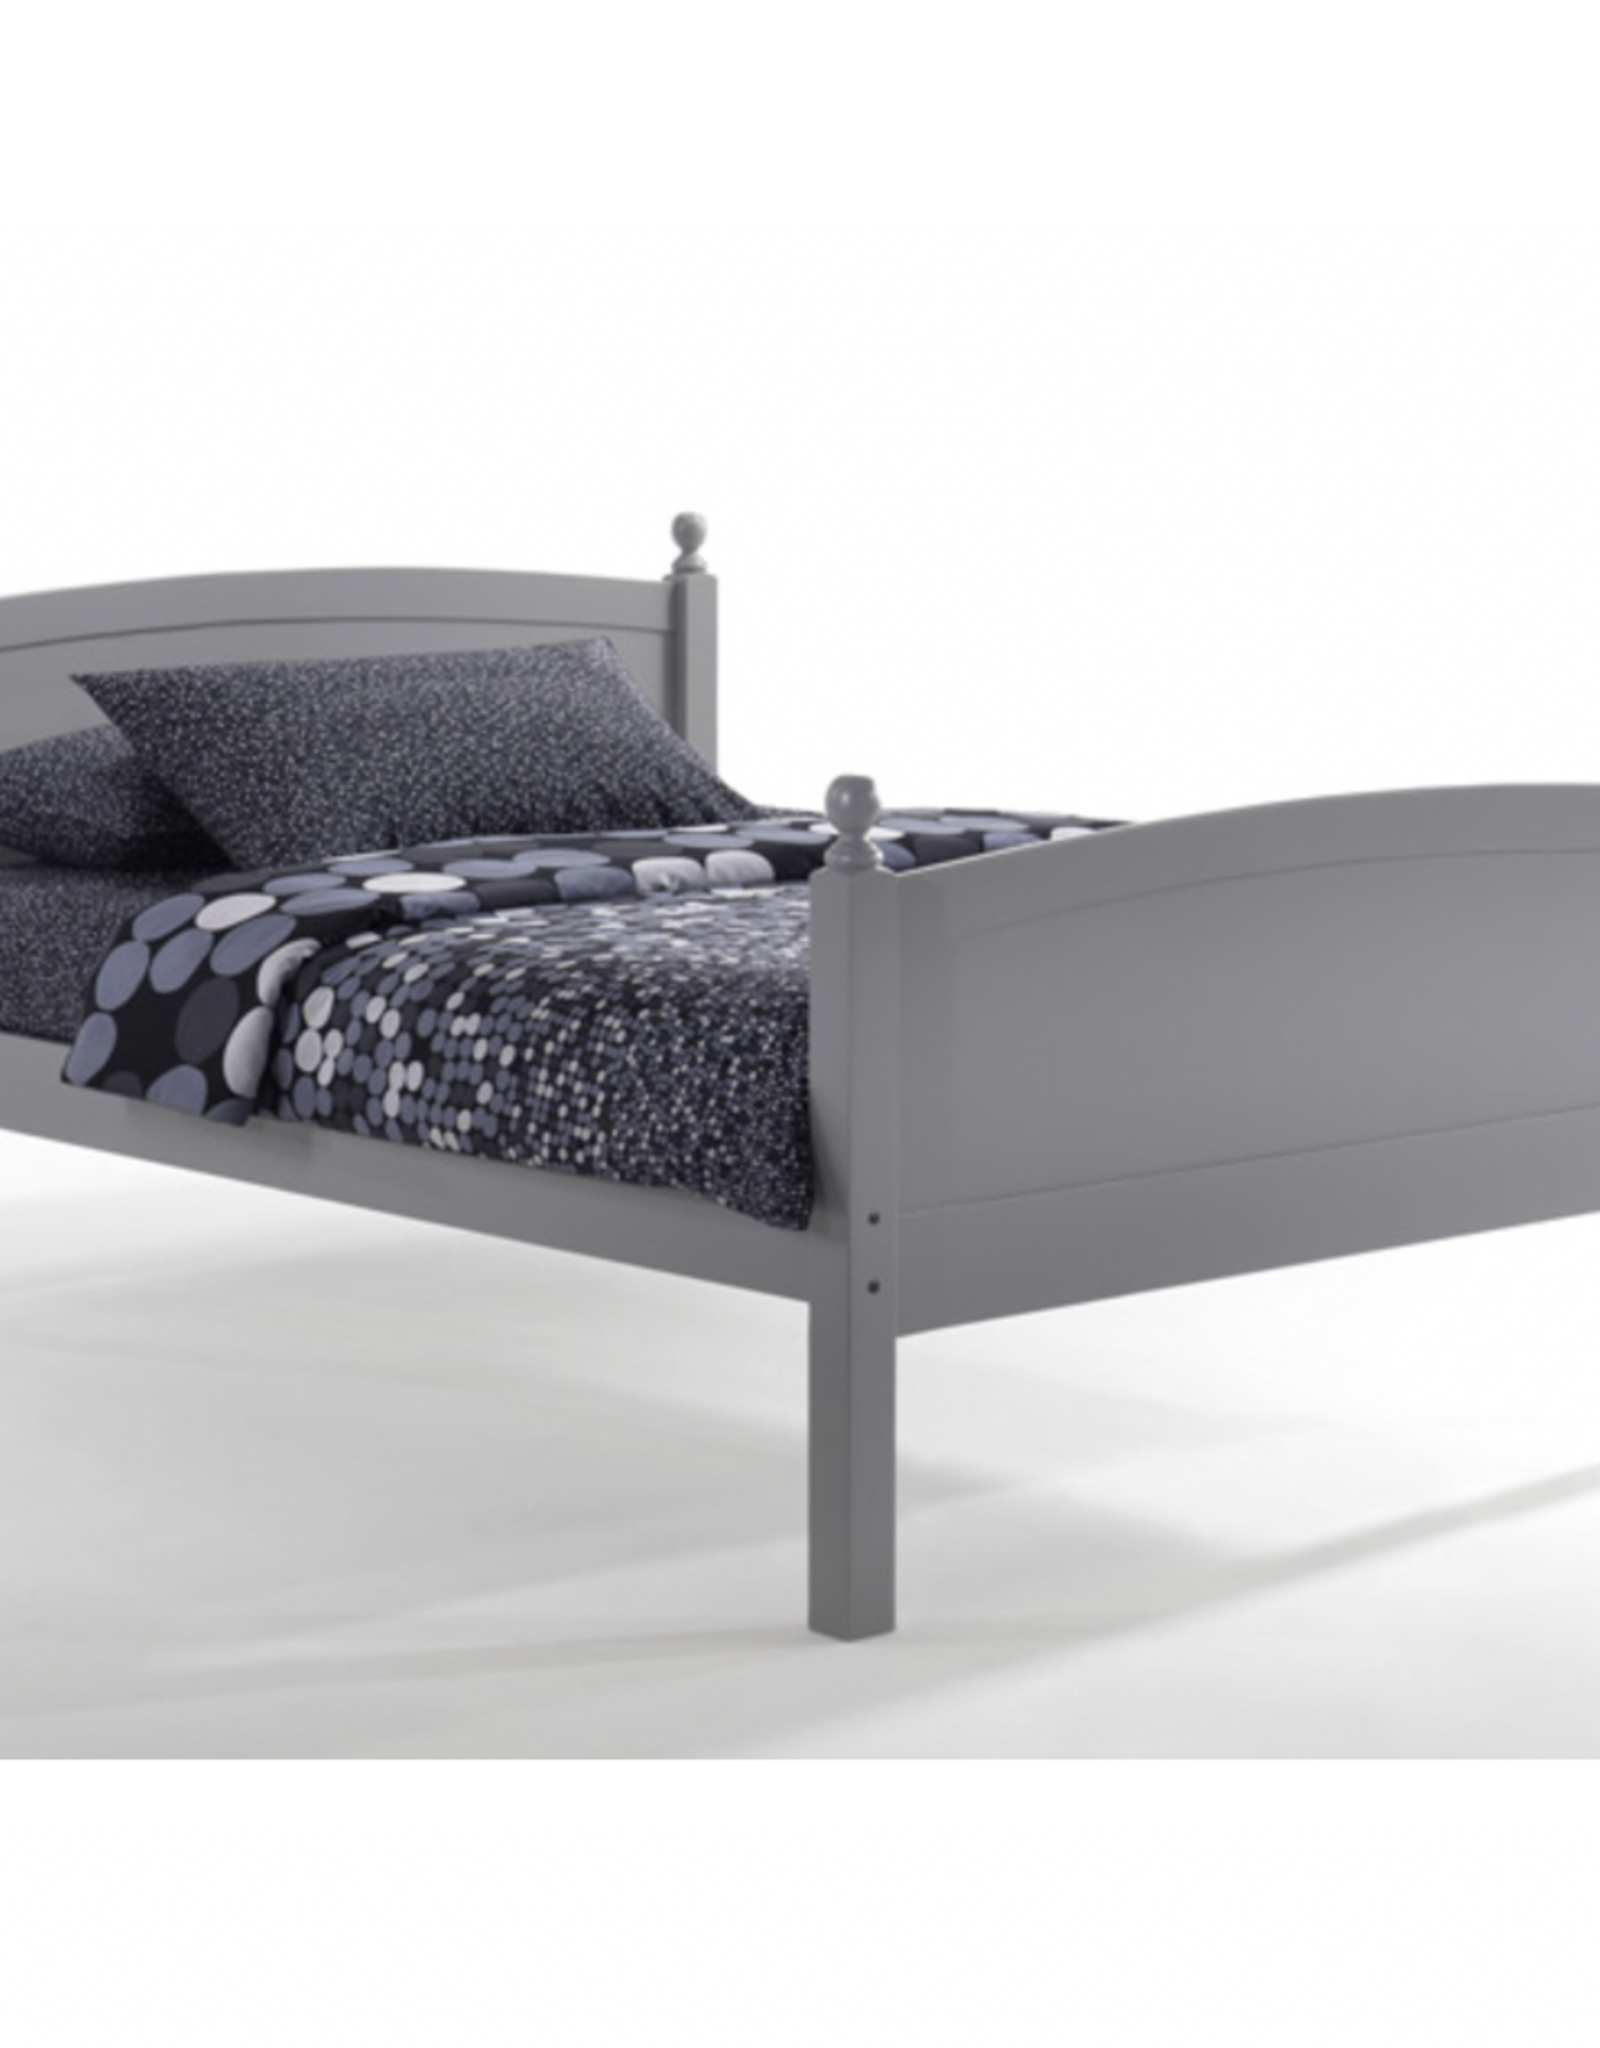 Licorice Platform Bed - Comes in Four Colors